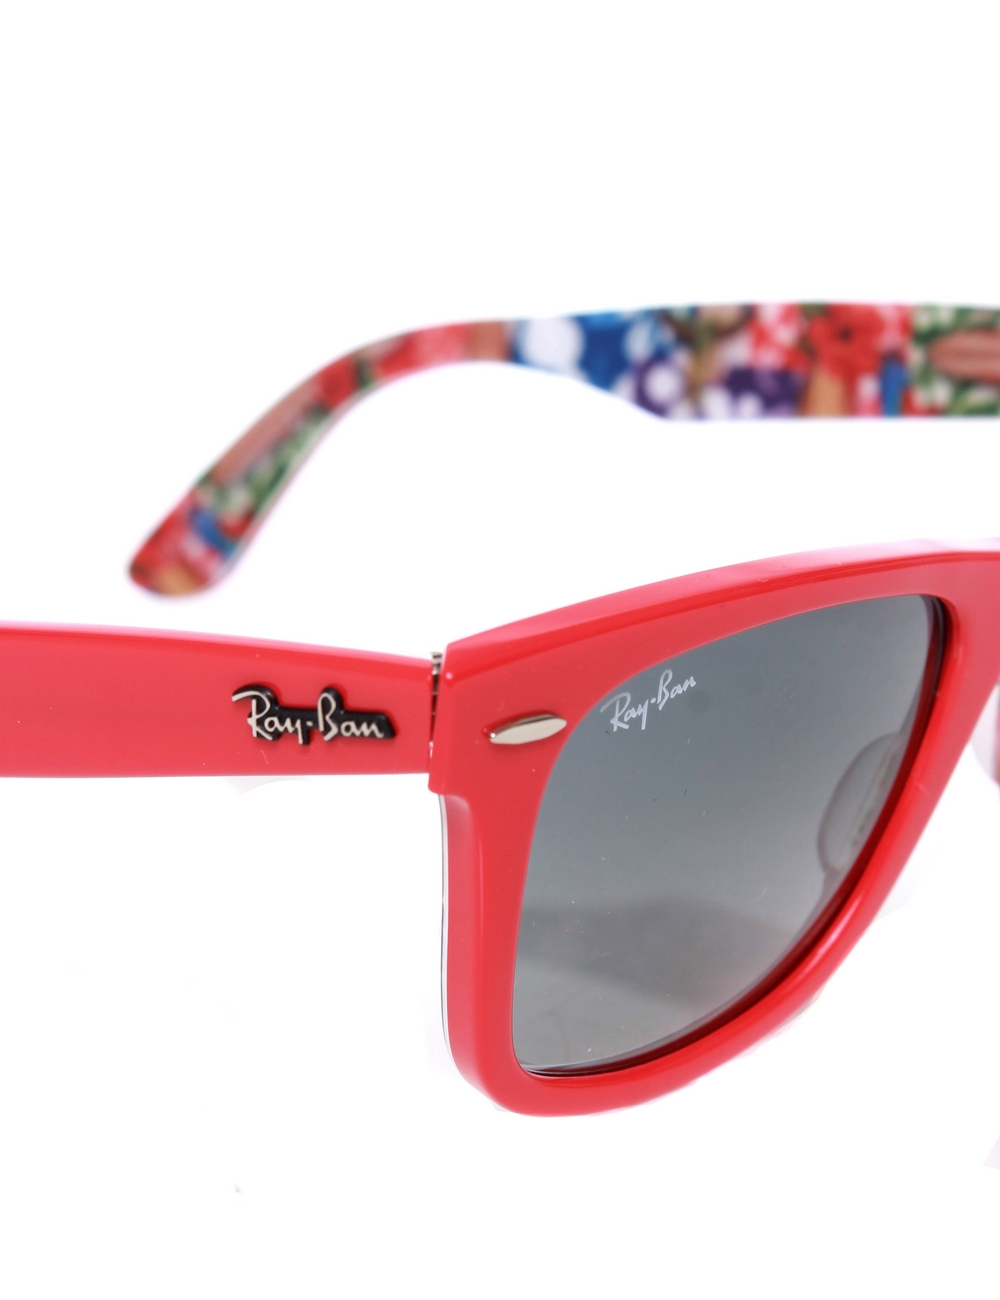 467adf7cfe4 Disney Ray Bans Cheap « One More Soul